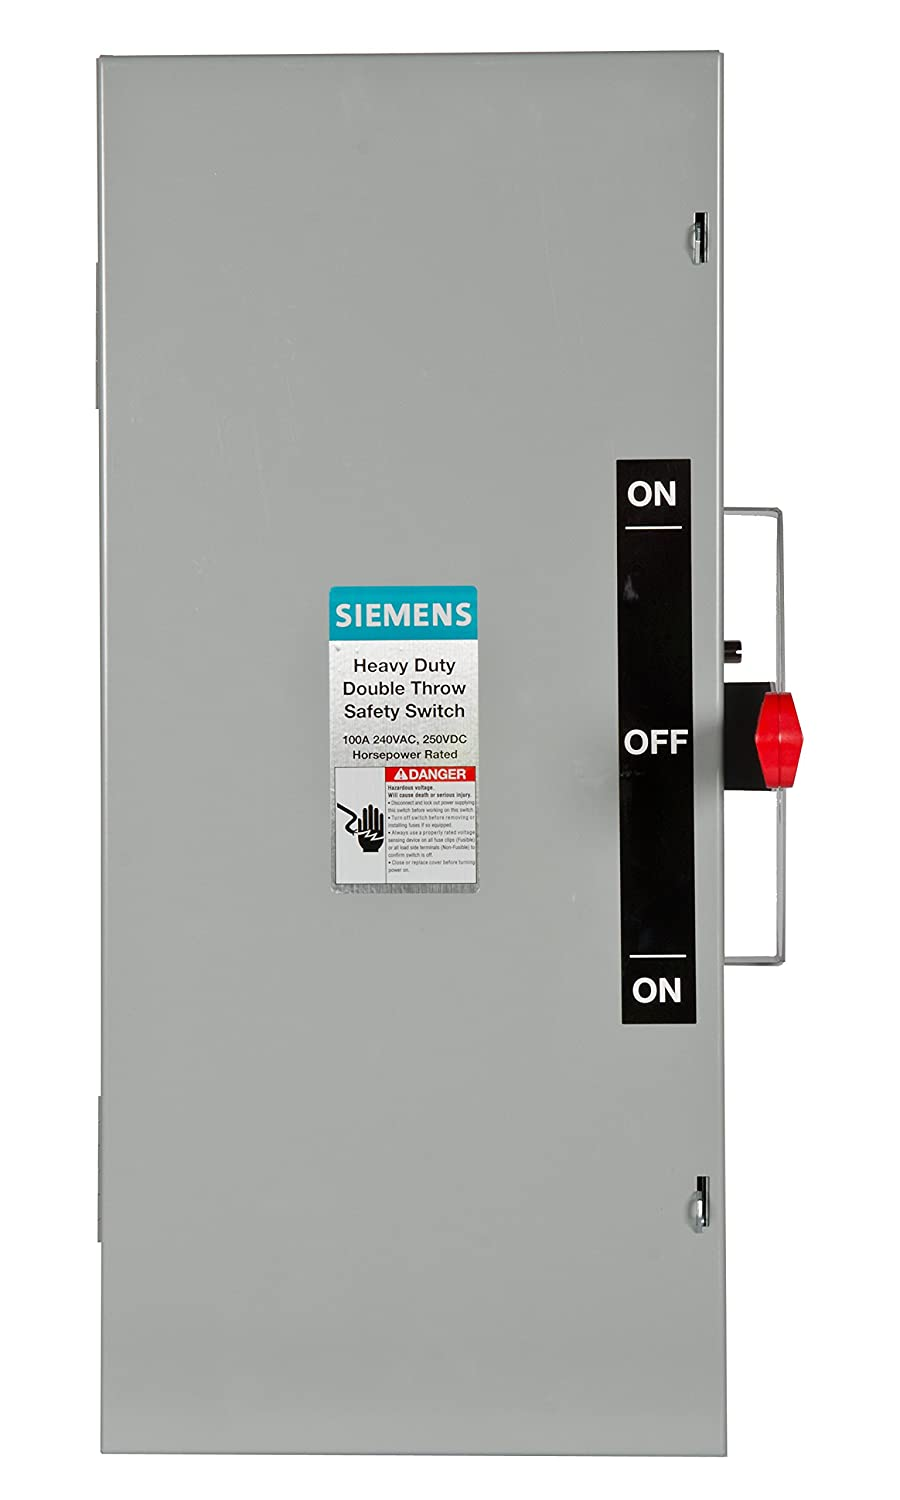 Siemens DTNF223 100-Amp 2 Pole 240-volt 2W Non-Fused Double Throw Safety  Switches - - Amazon.com